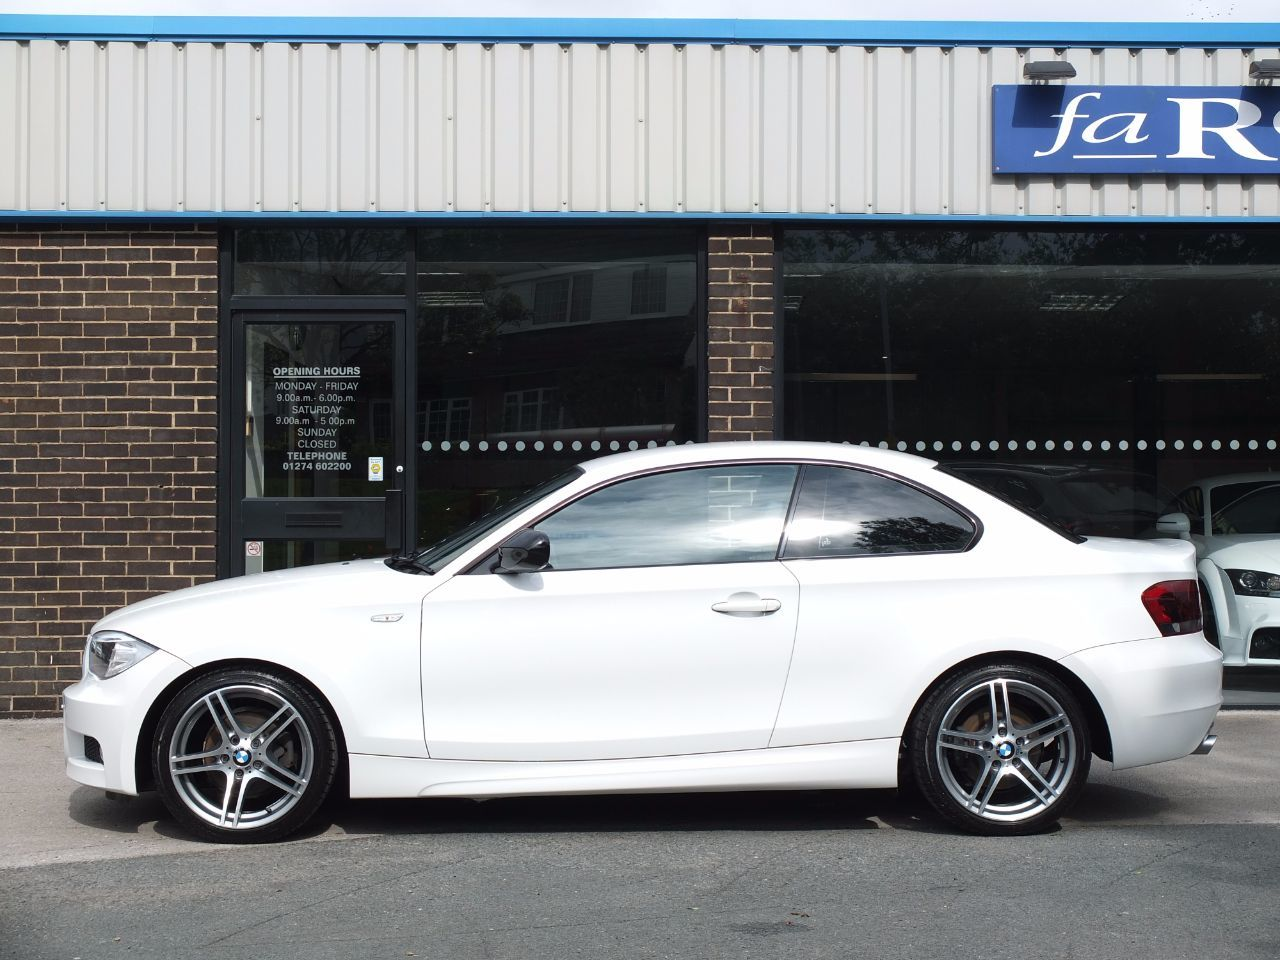 Used BMW 1 Series 118d Sport Plus Edition Coupe for sale in Bradford, West Yorkshire fa Roper Ltd